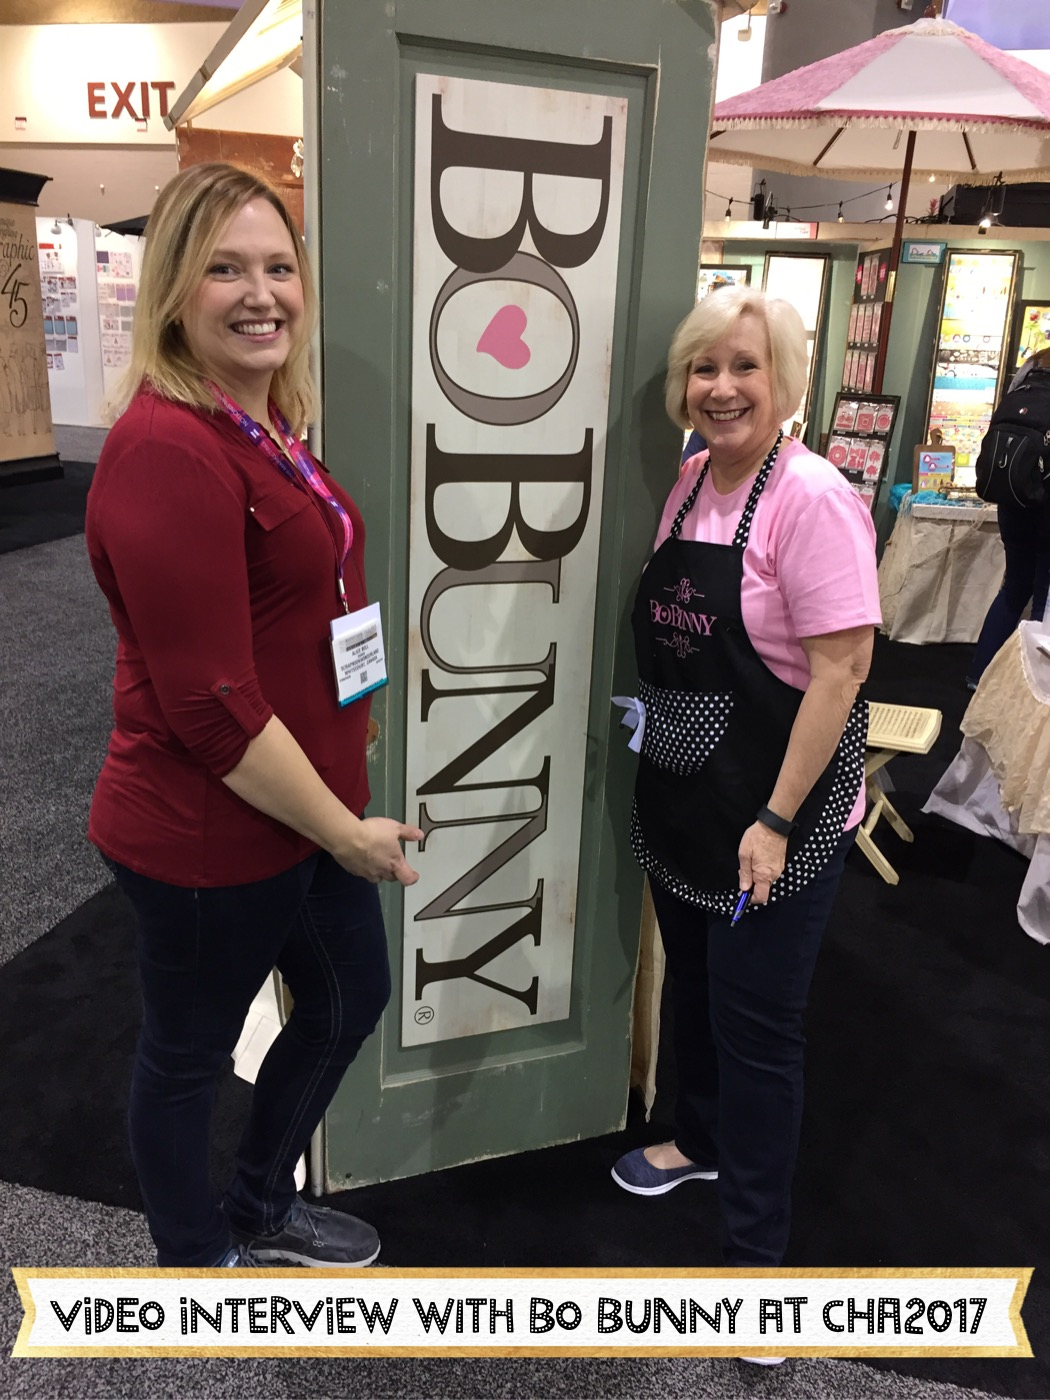 Video Interview withJeri Tanner from Bo Bunny CHA2017 Creativation. #CHA2017 #Creativation #BoBunny #lifeincolor #aryiasgarden #gameon #makeasplash #faith